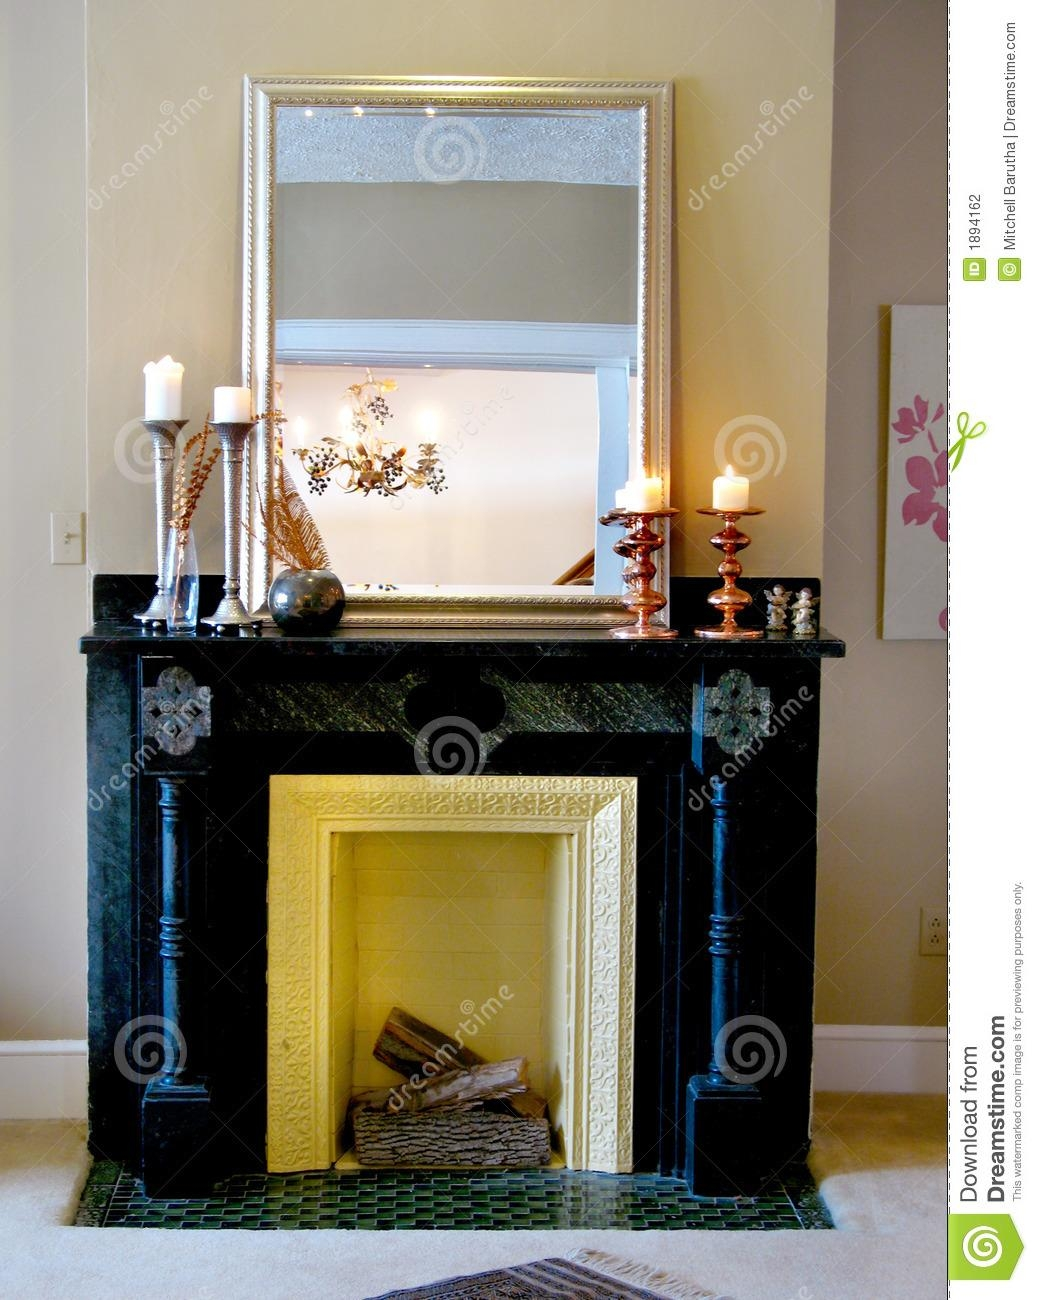 Black Mantle With Mirror & Candlesticks Stock Photography – Image Inside Mantle Mirror (View 14 of 20)